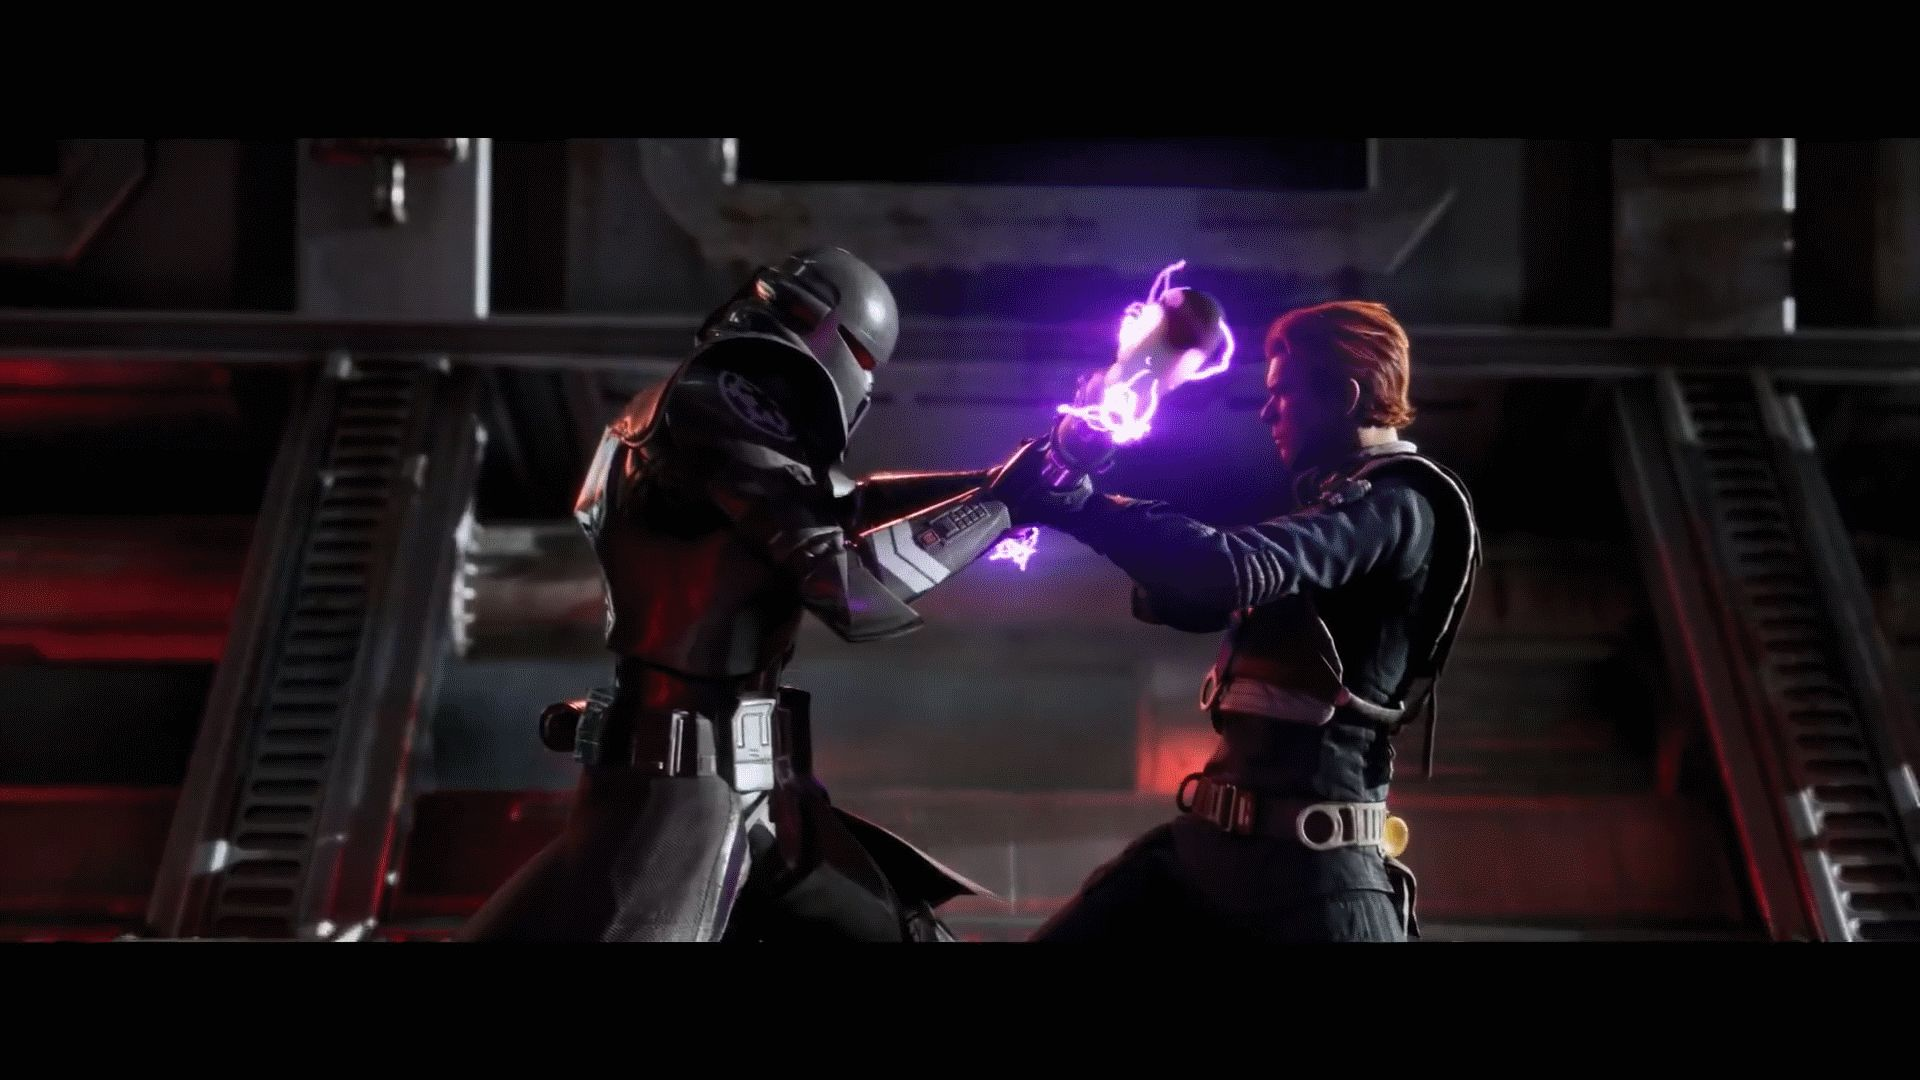 Star Wars Jedi Fallen Order, EA shows the gameplay